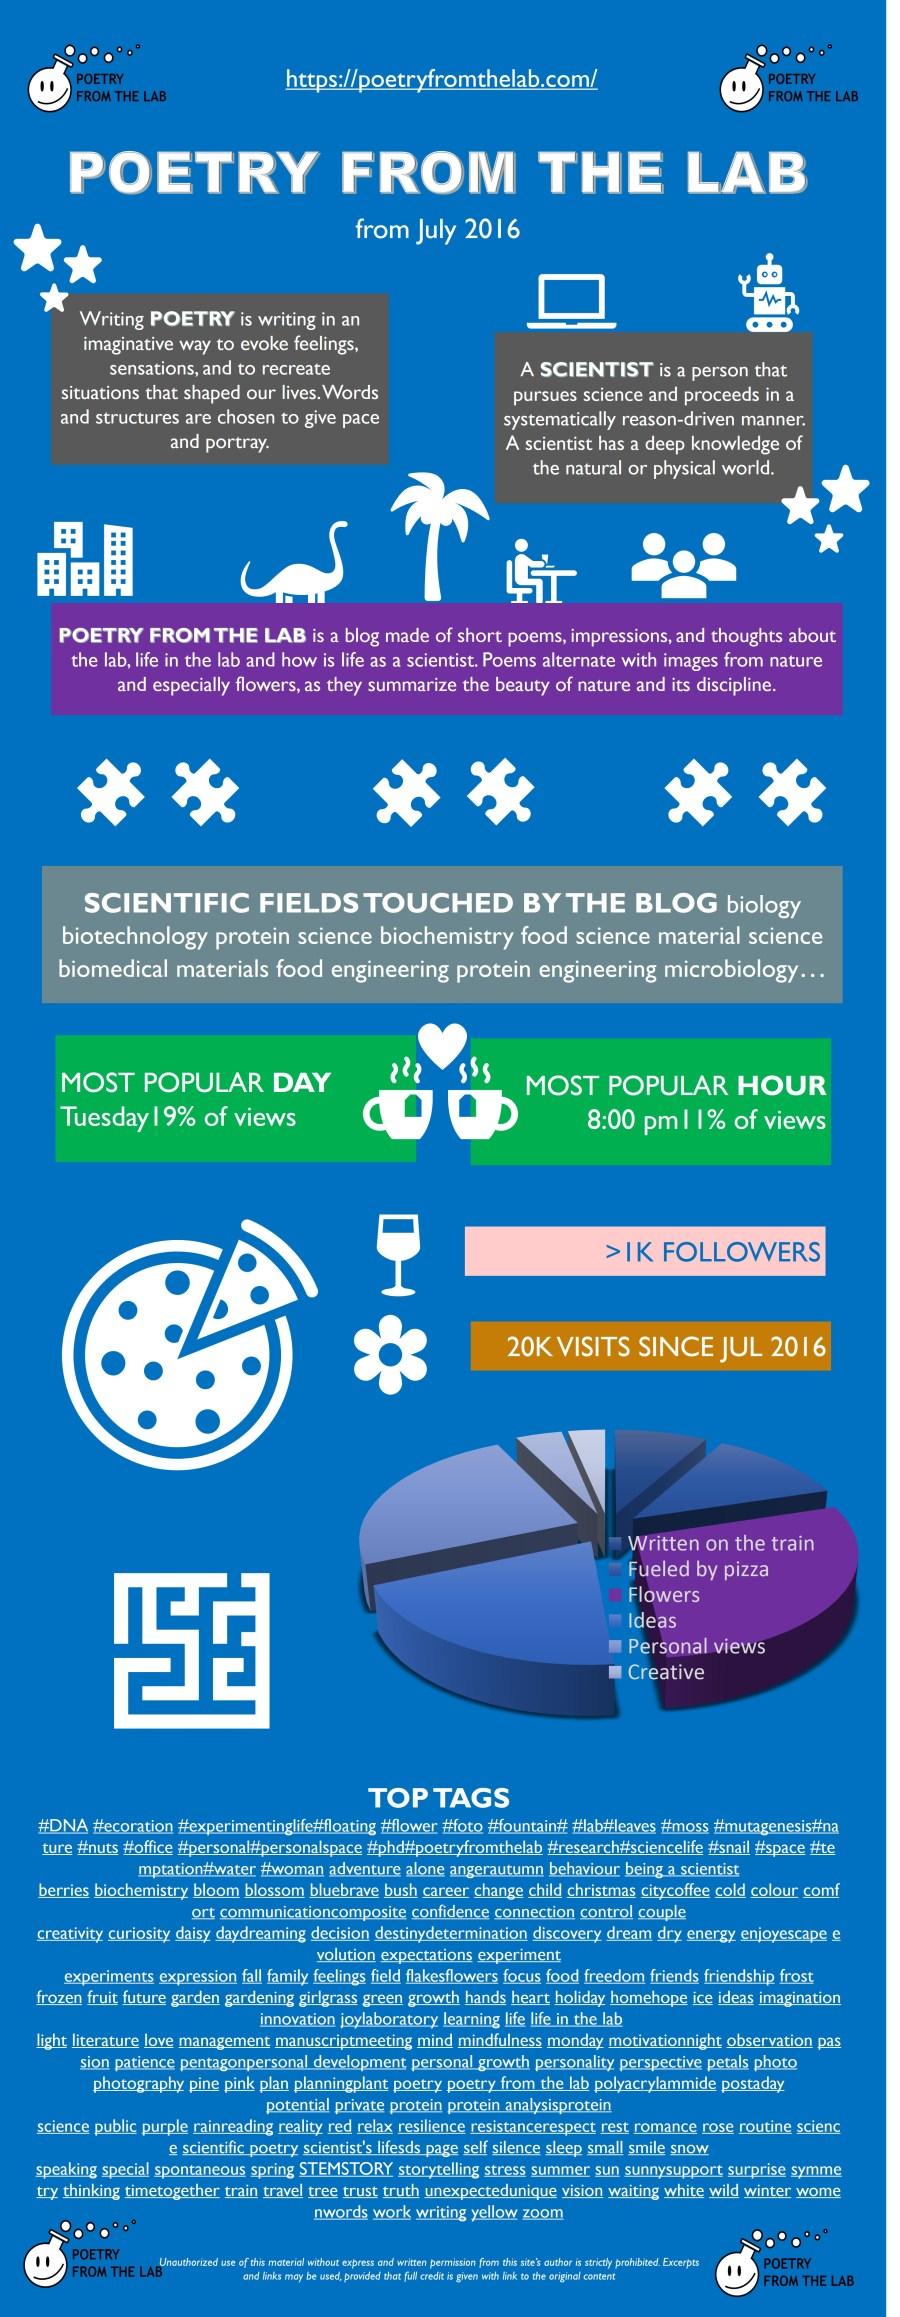 infographic about poety from t he lab